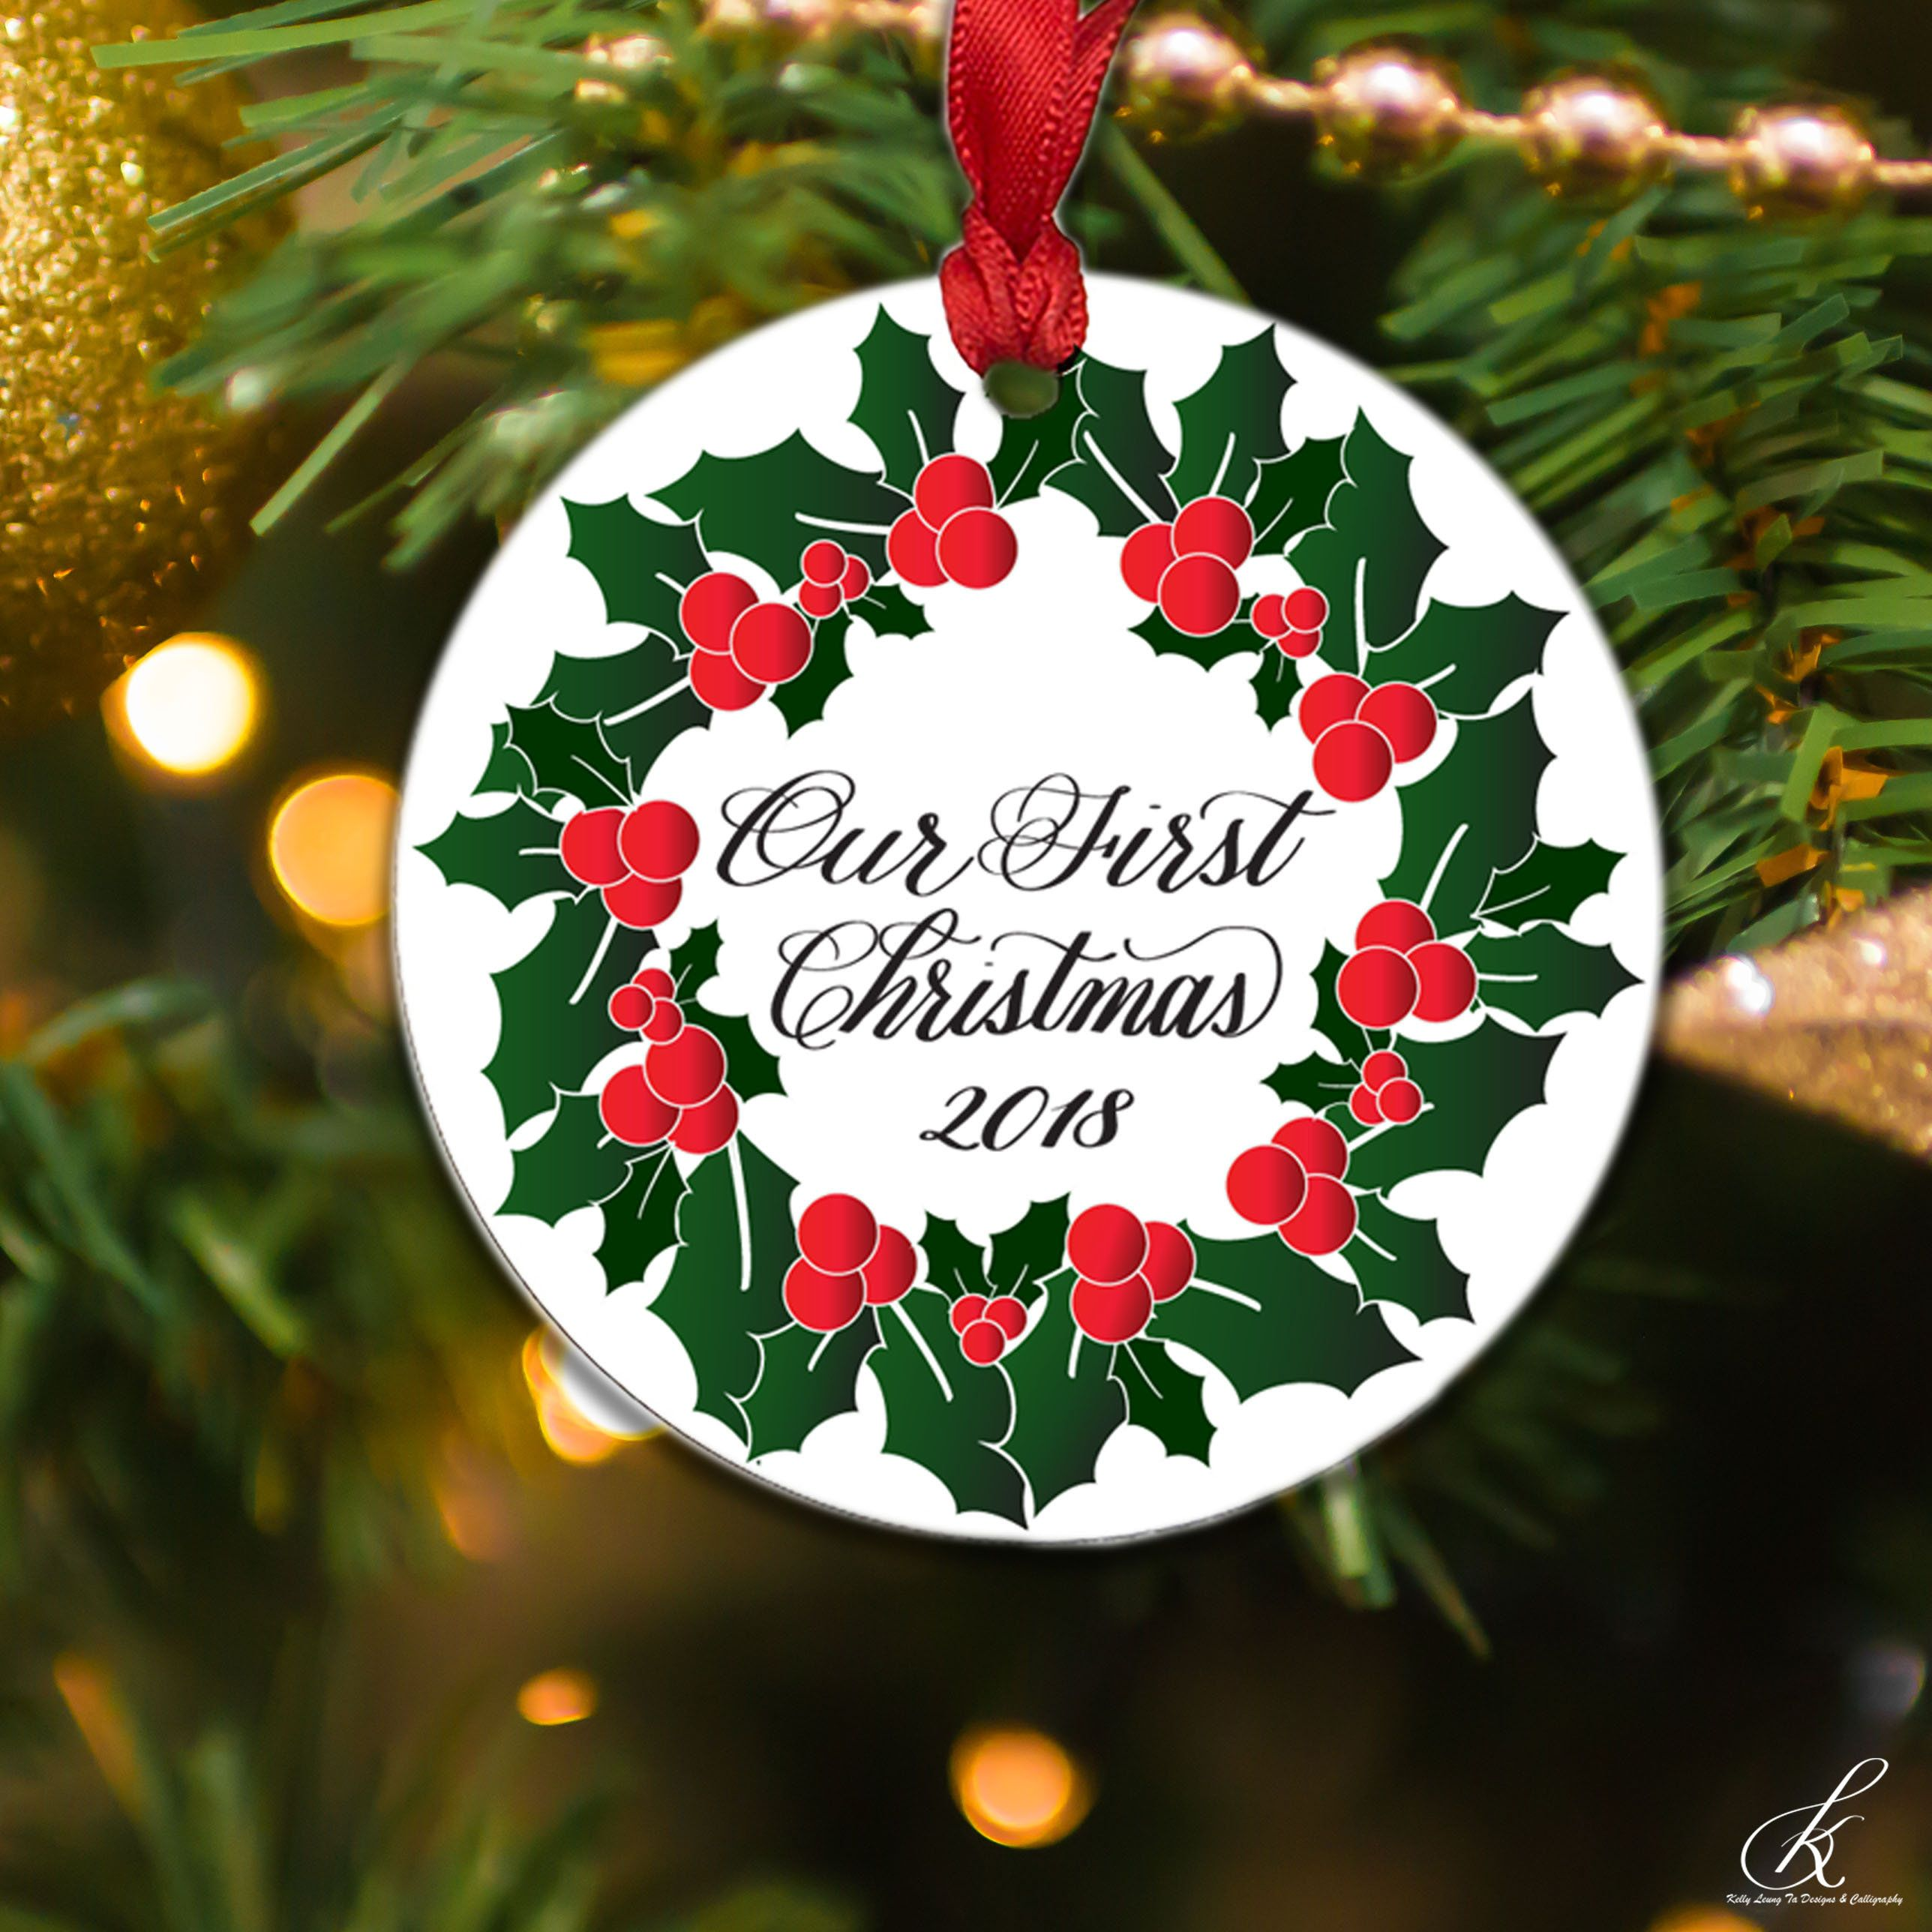 Our First Christmas 2018 Holly Wreath Holiday Round Keepsake ...